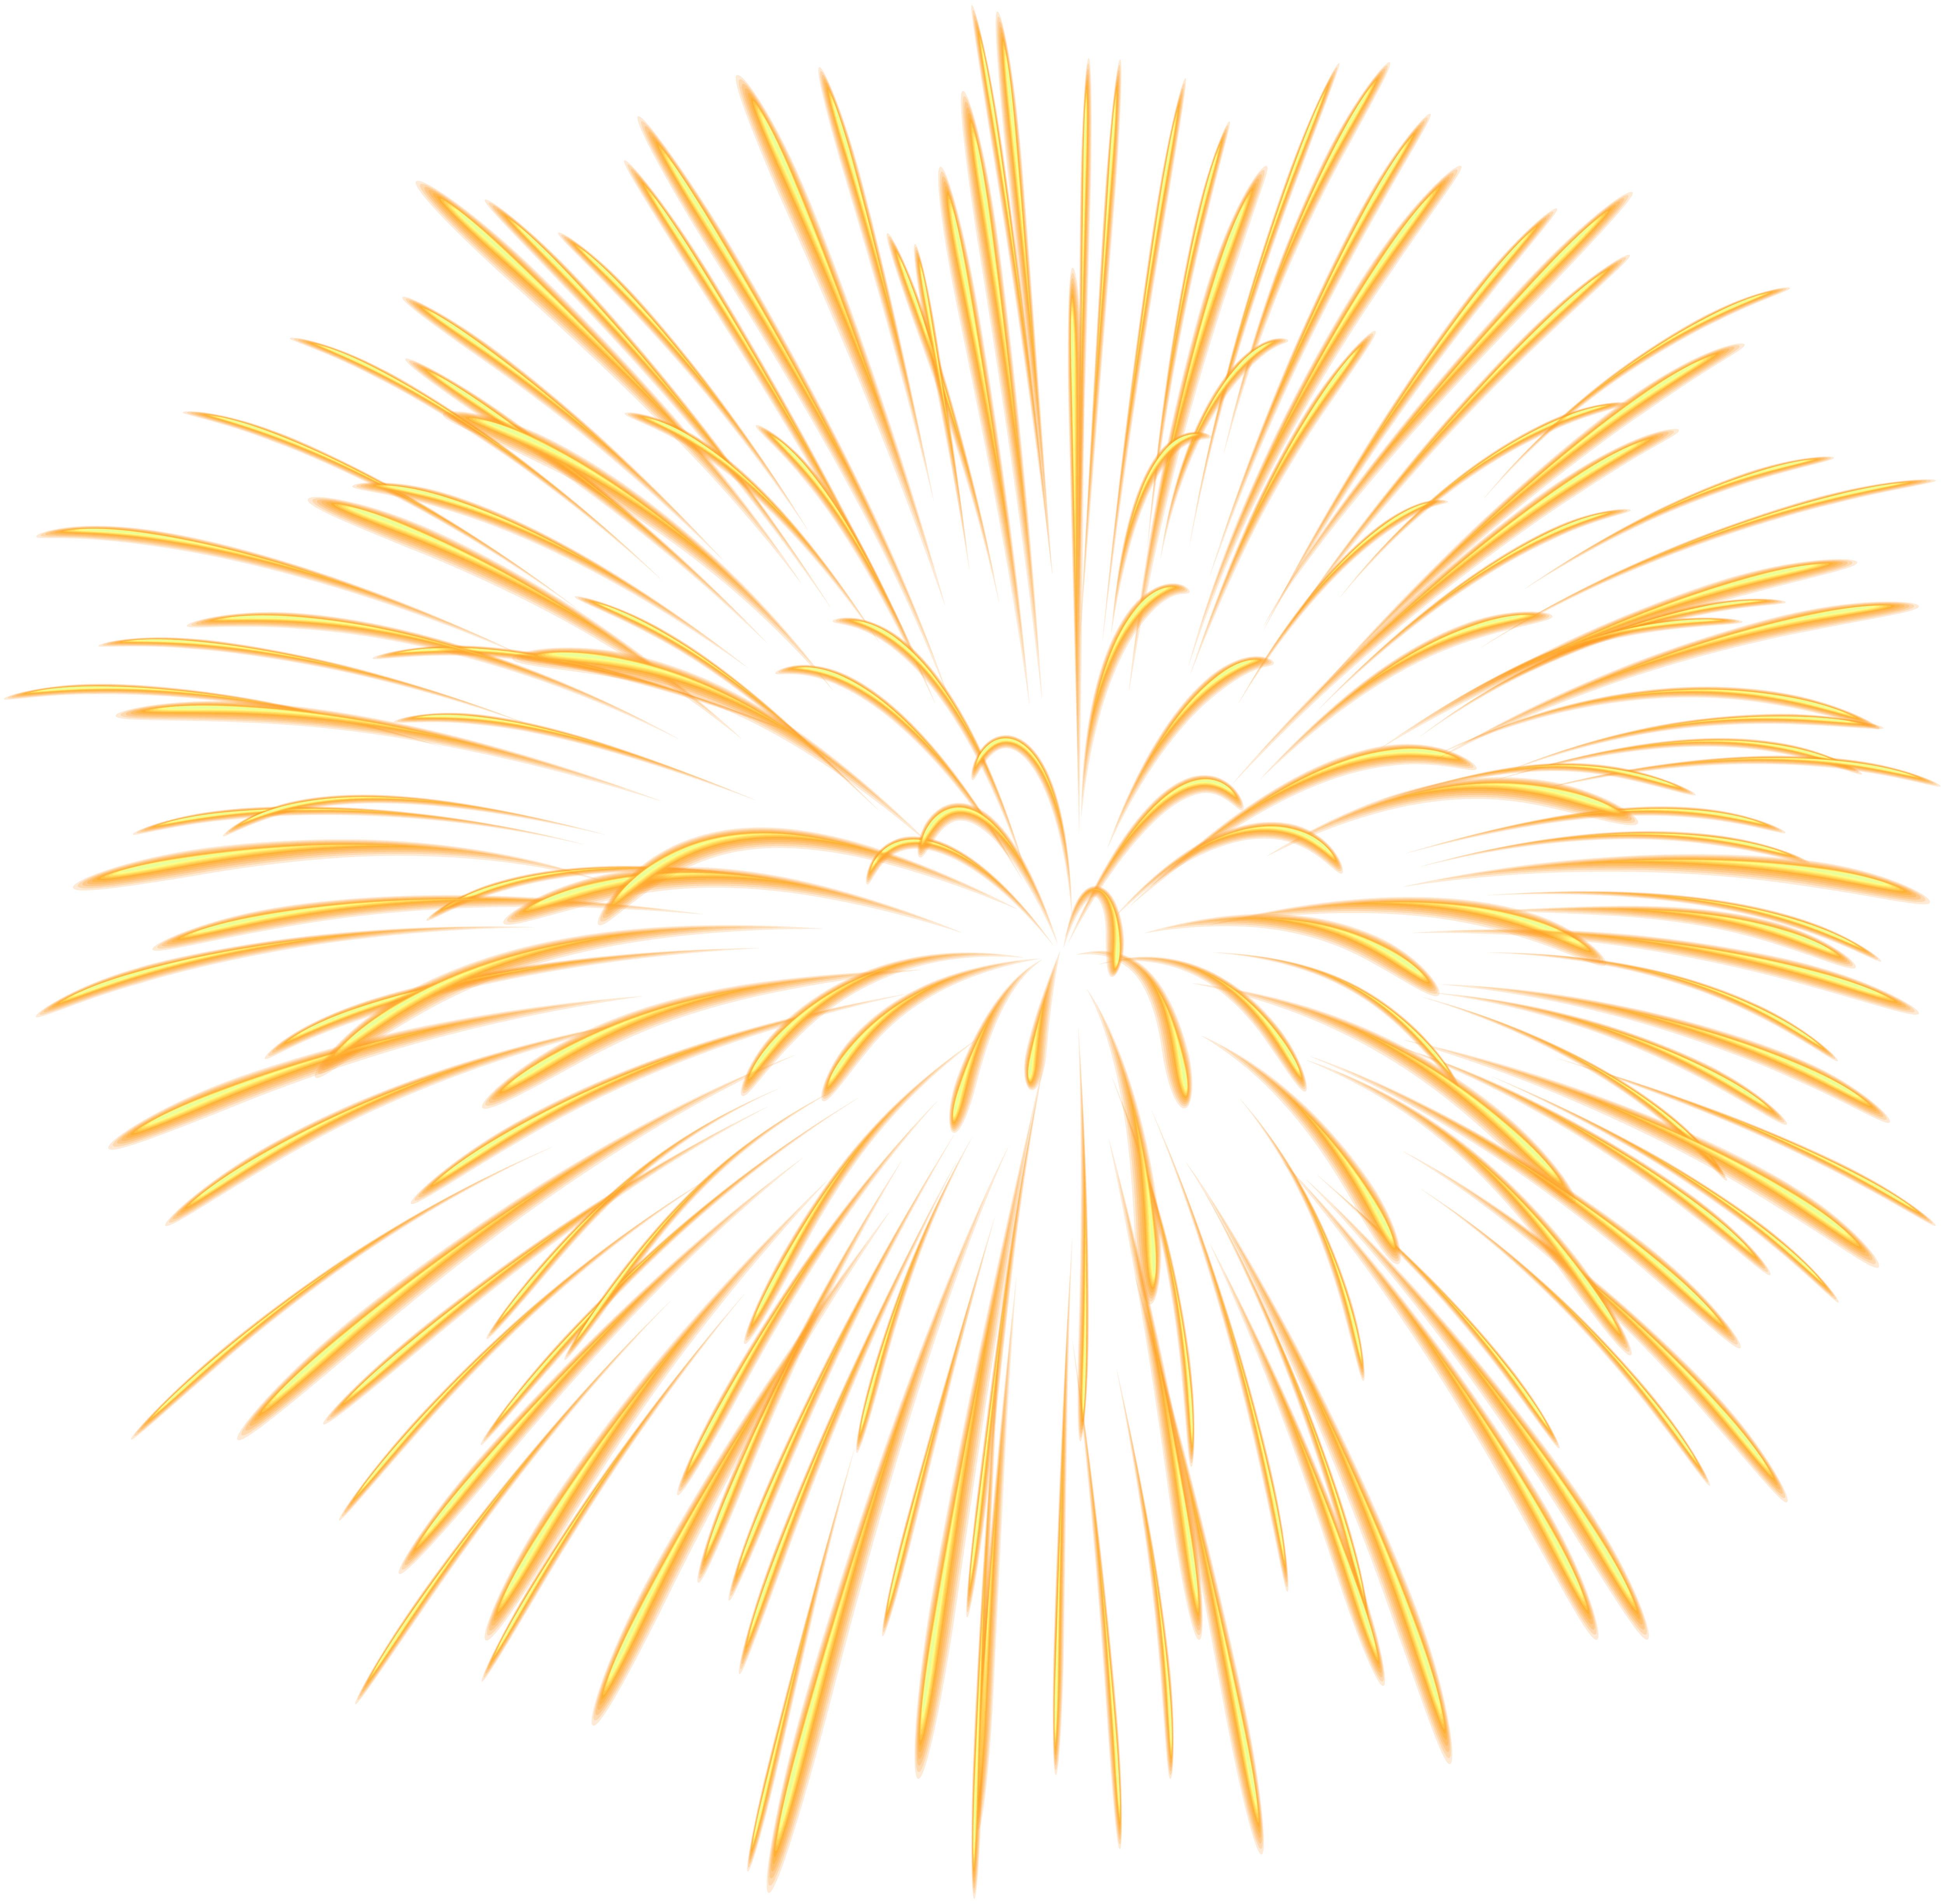 Fireworks clipart yellow  Yopriceville PNG Firework Gallery